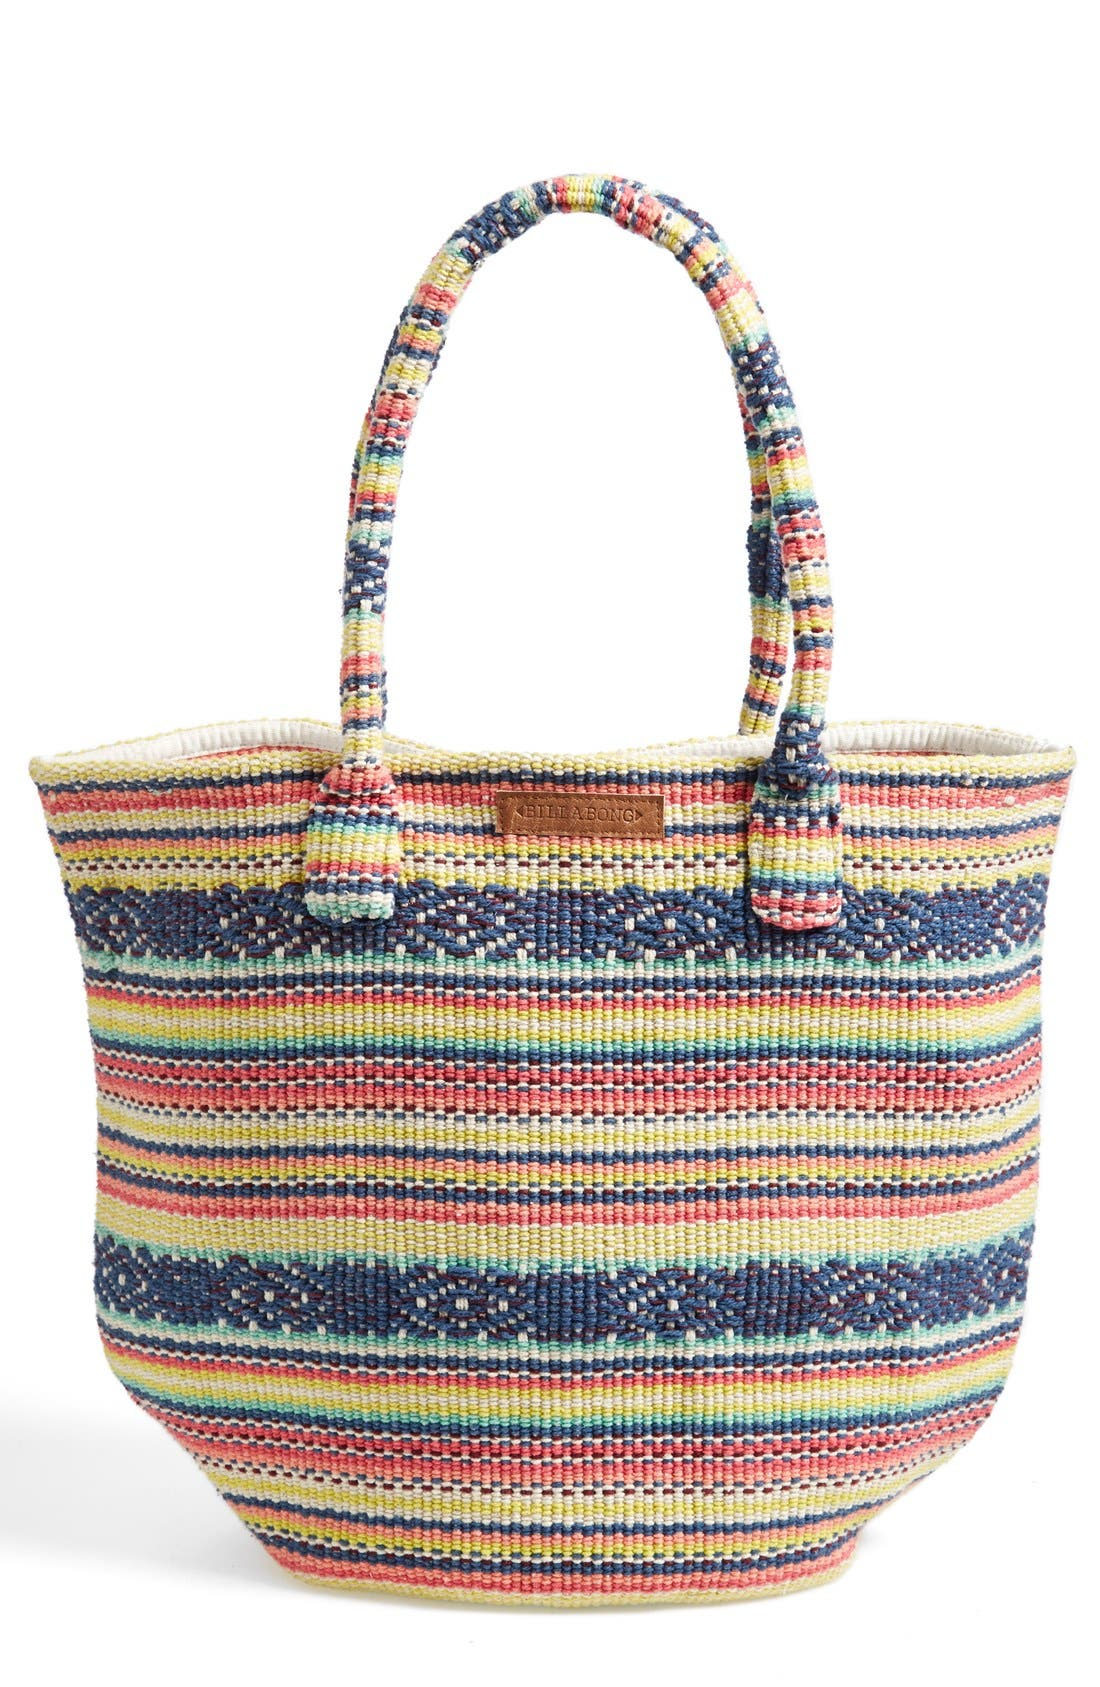 Alternate Image 1 Selected - Billabong 'Even Waves' Woven Beach Tote